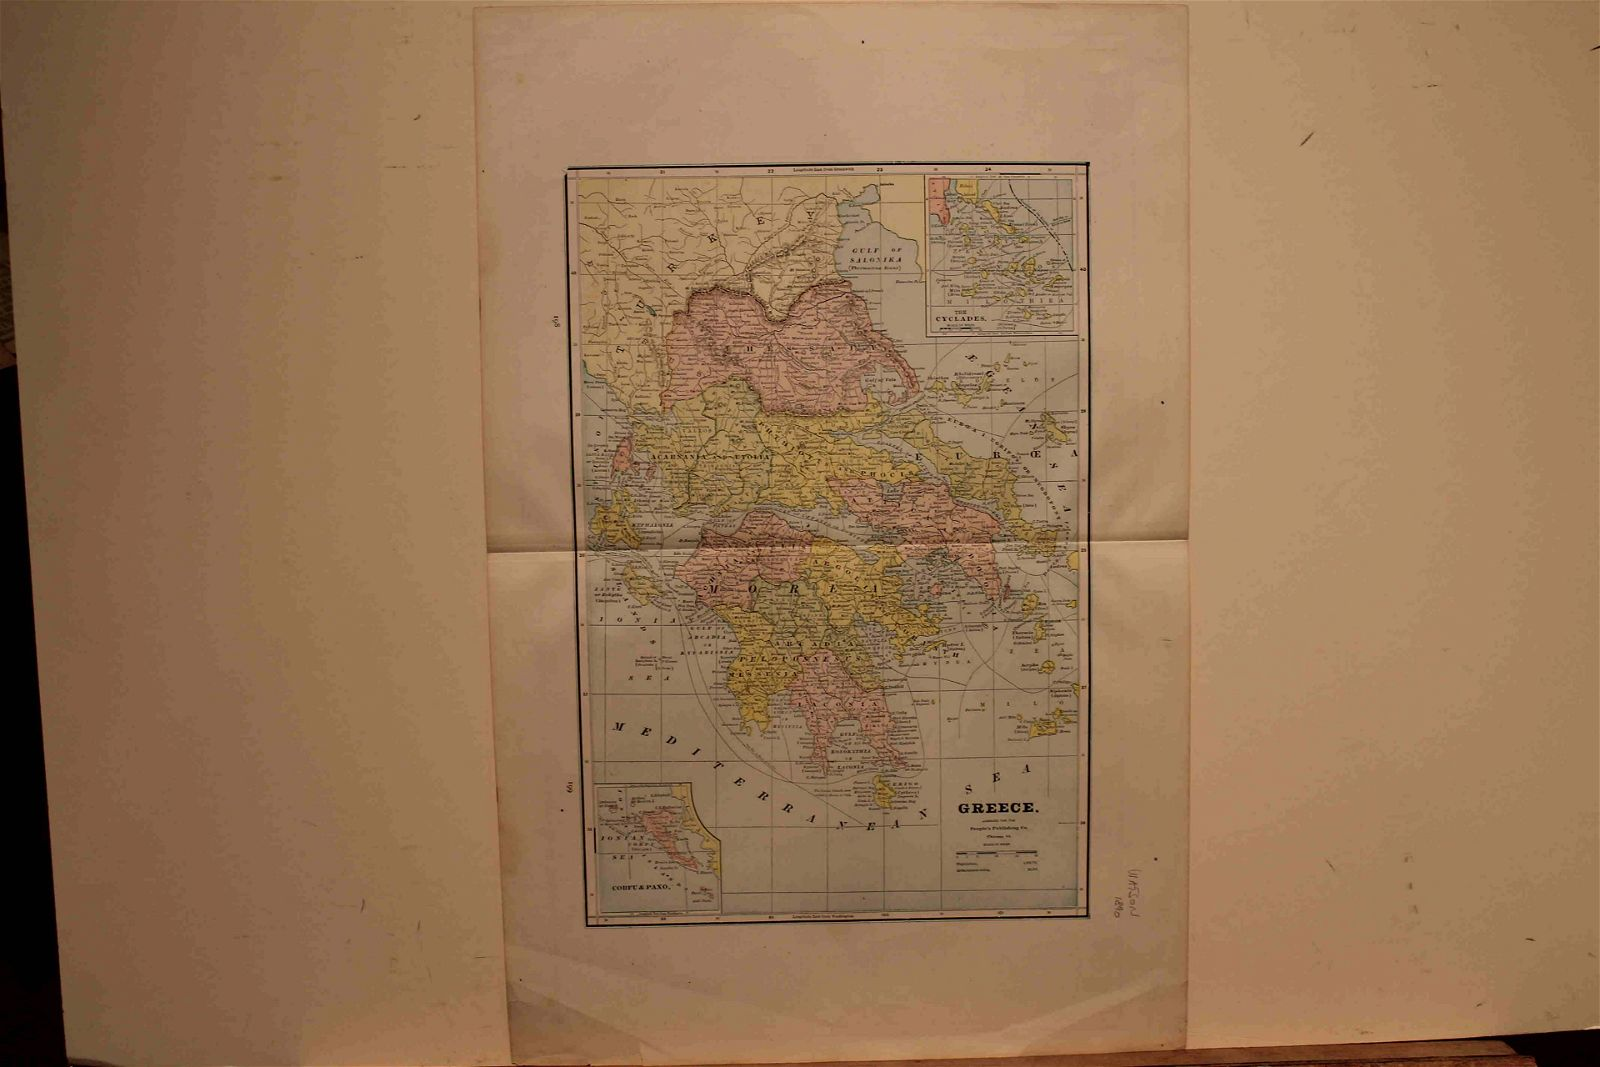 1890 Map of Greece